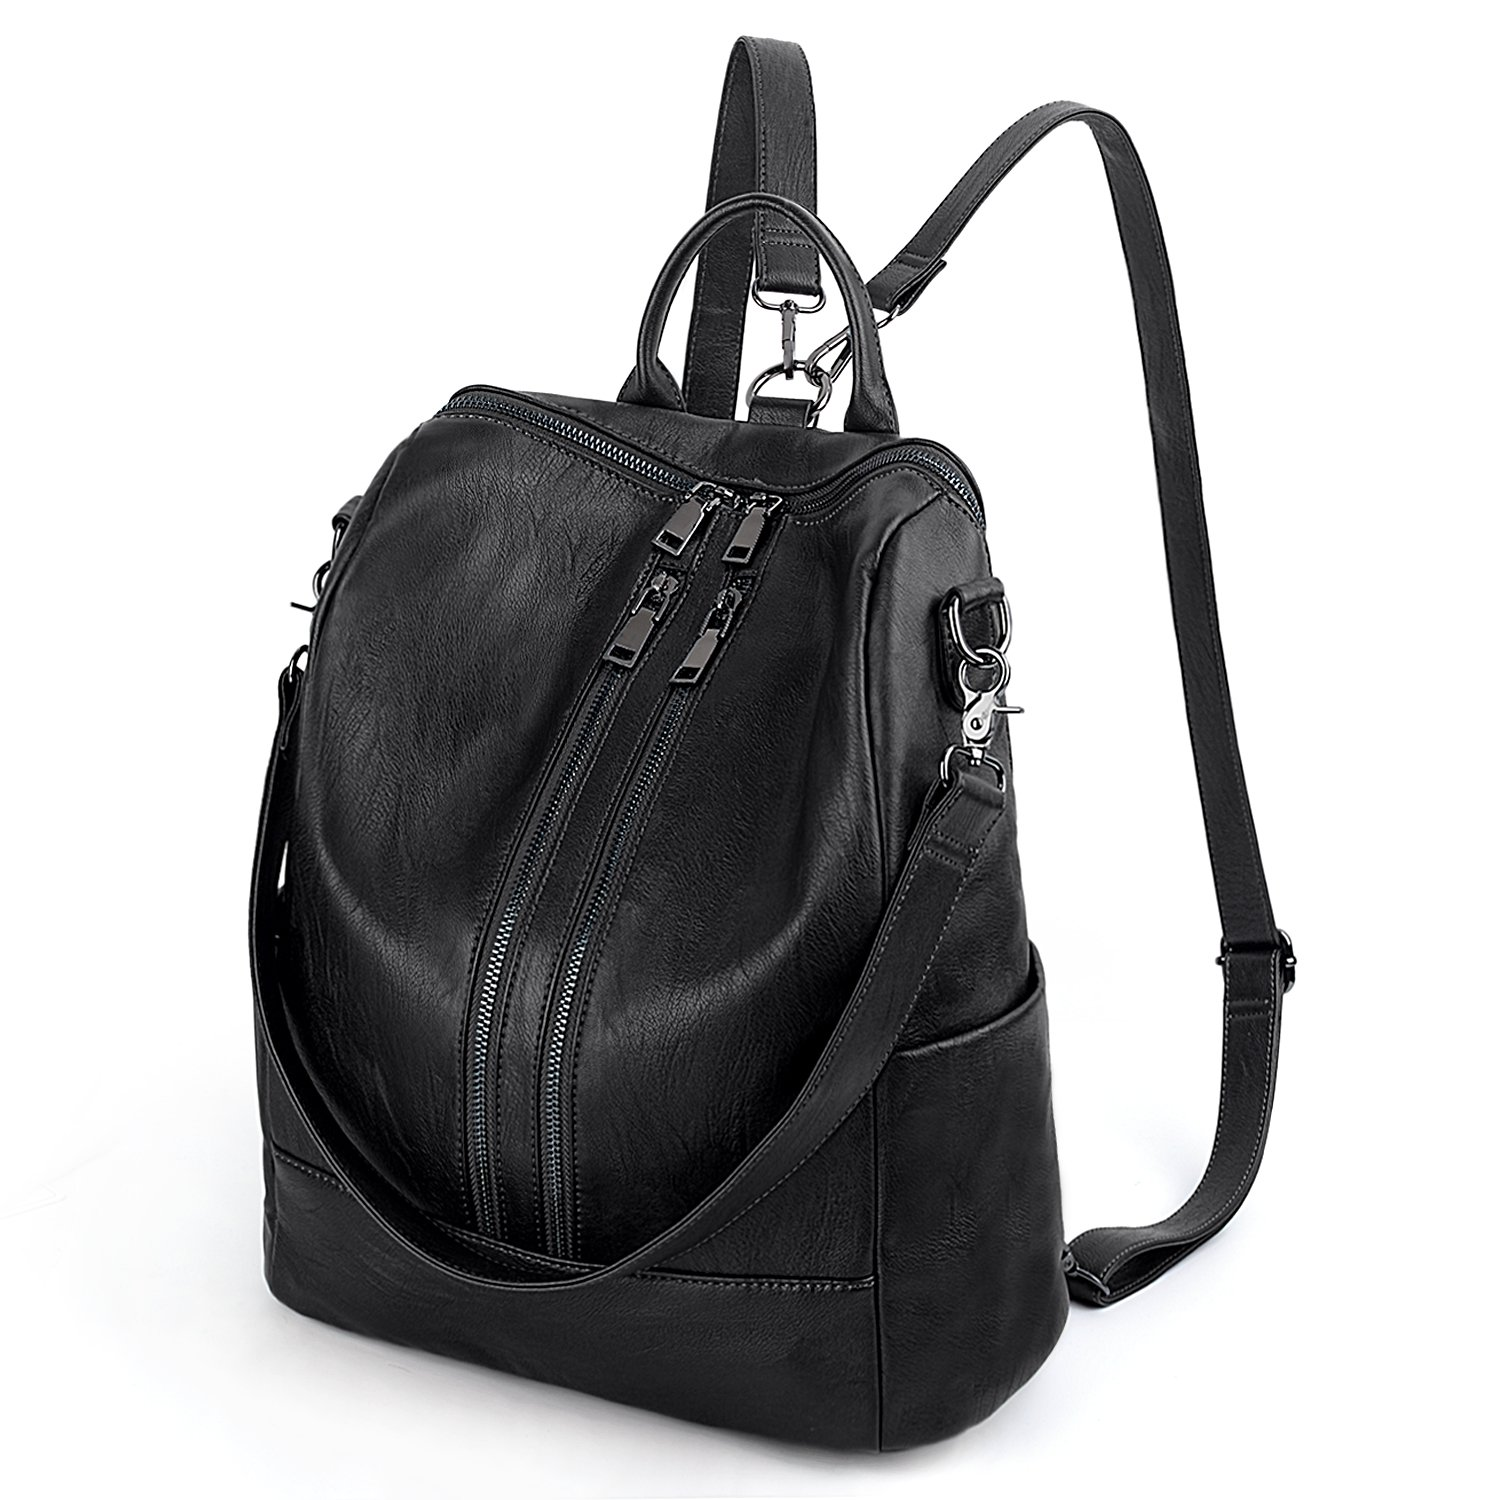 465b8b9d8c6f Amazon.com  UTO Women Backpack Purse PU Washed Leather Convertible Ladies  Rucksack Double Zipper Pockets with Shoulder Strap Black  Shoes